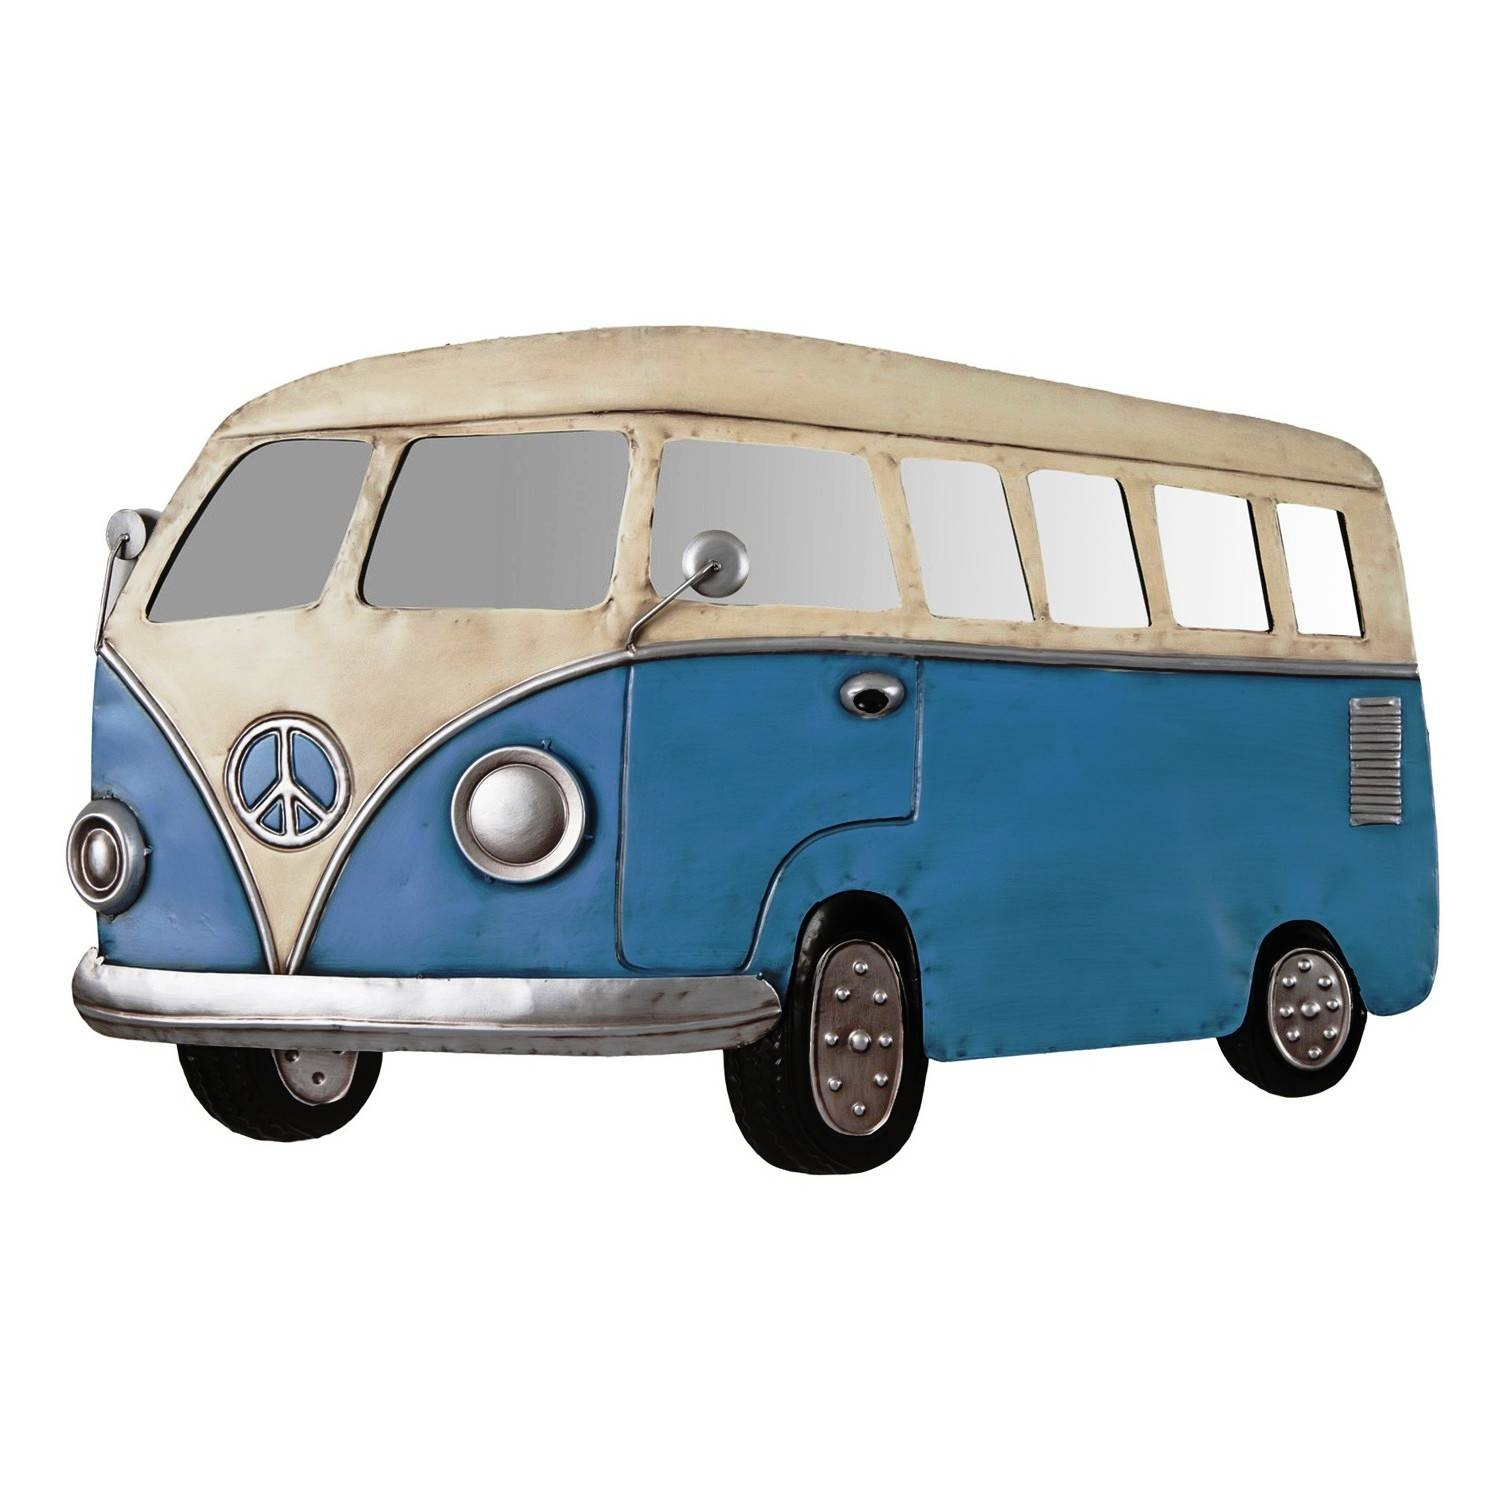 Metal Wall Art Retro Camper Van | Decorcave Within Newest Campervan Metal Wall Art (View 7 of 20)